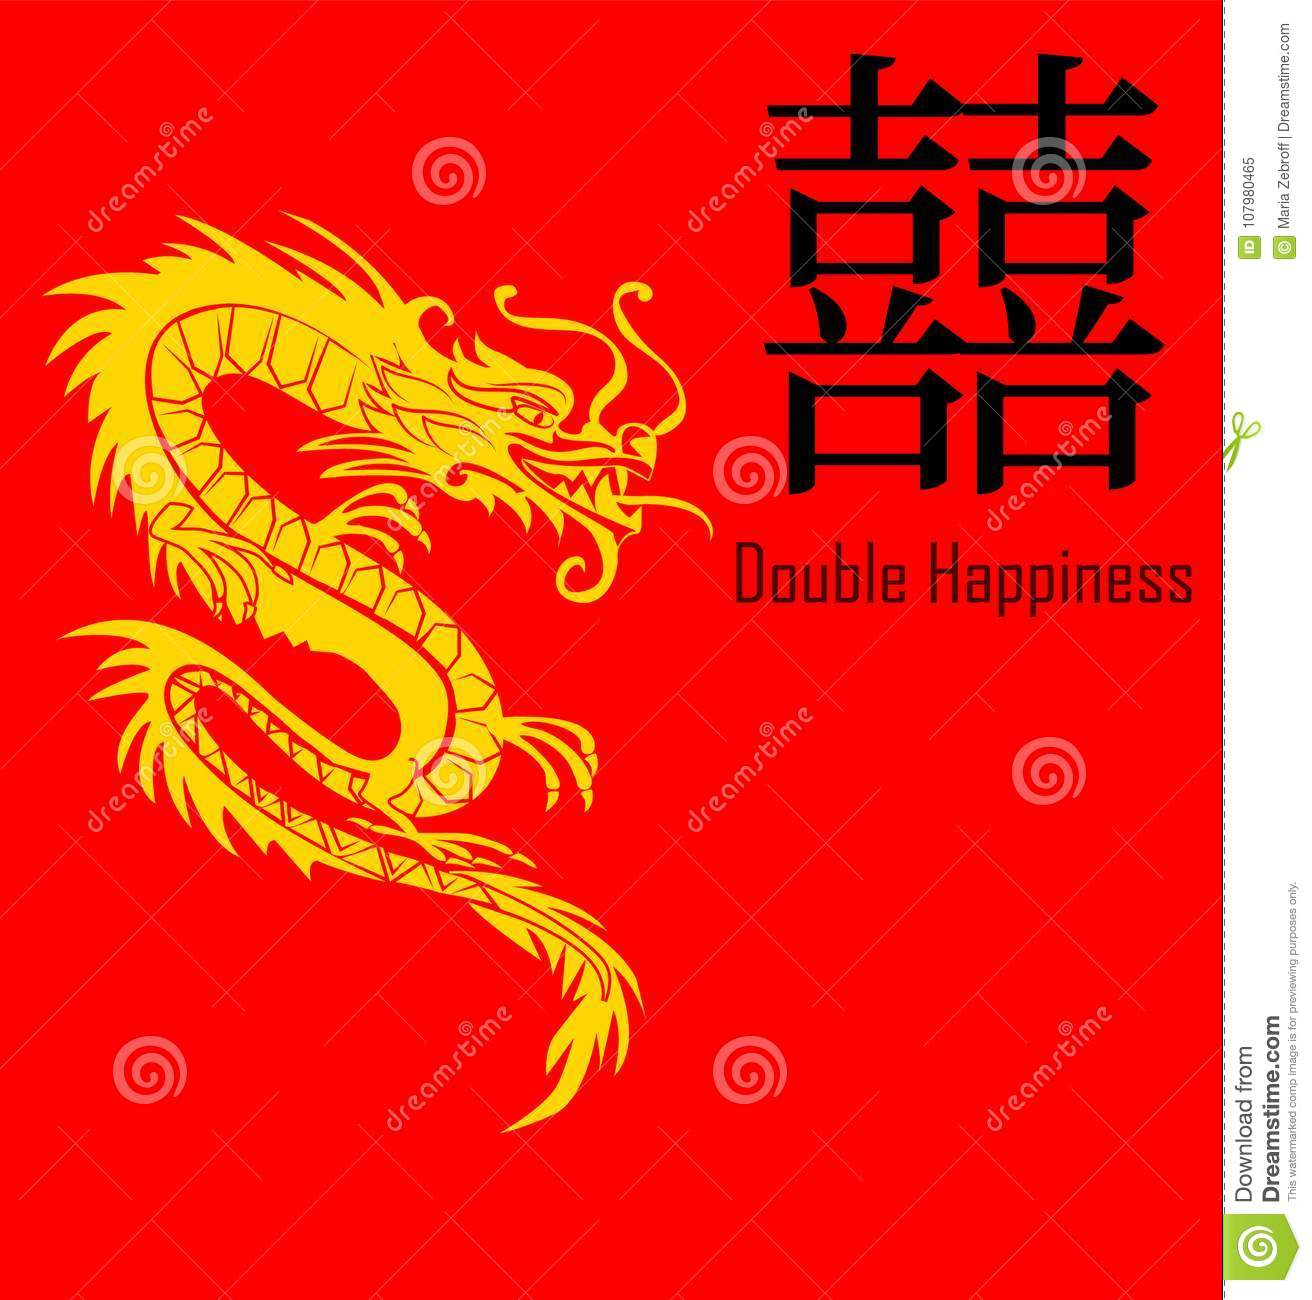 Paper Cut Out Of A Dragon China Zodiac Symbols Stock Vector